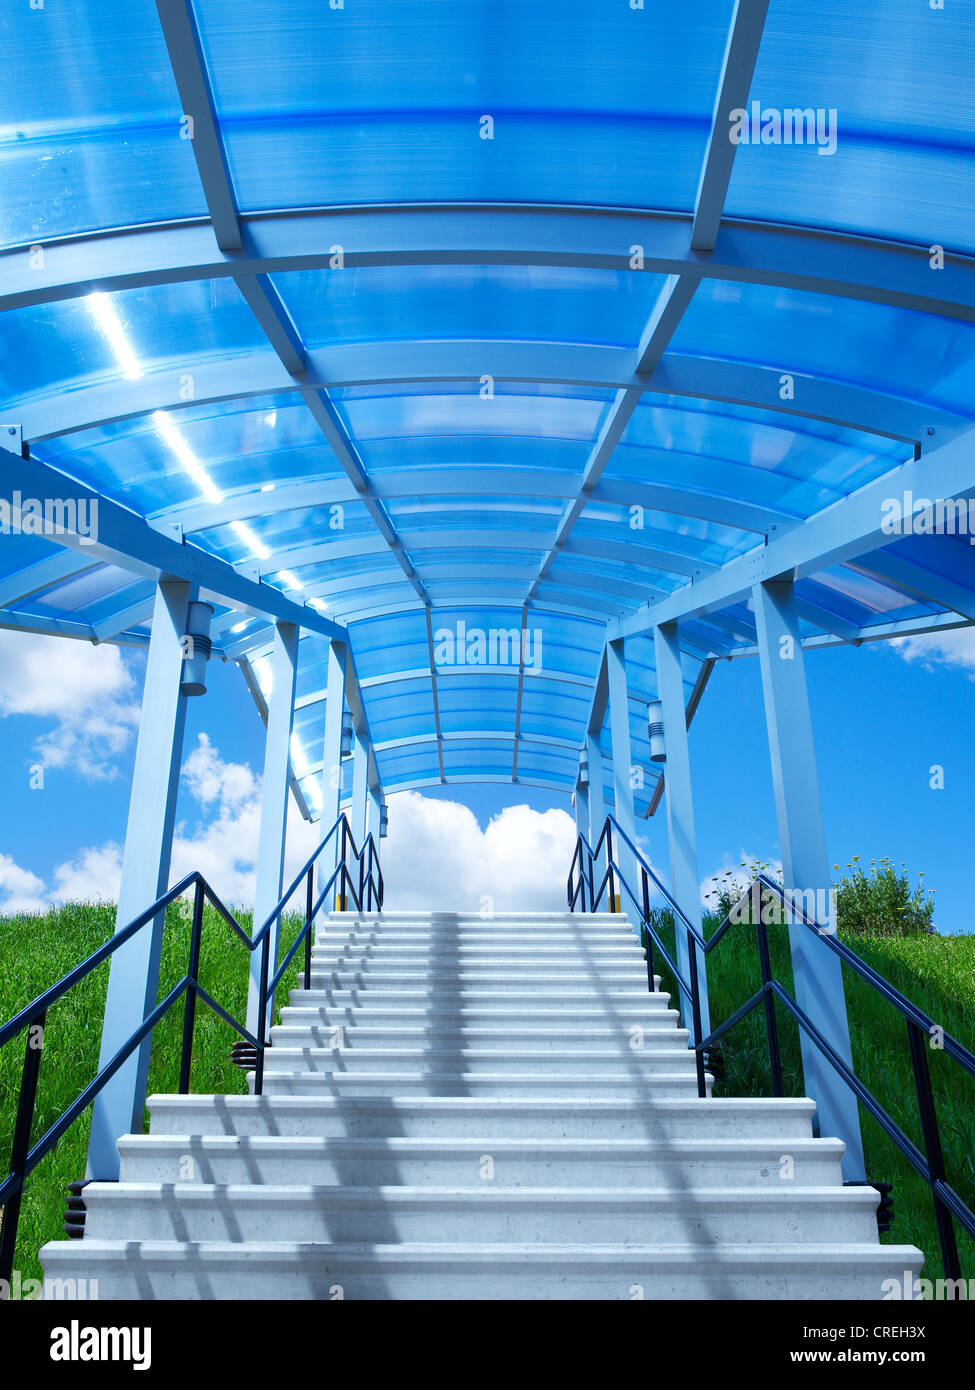 Stairs Steps With Blue Glass Canopy Stock Photo Royalty